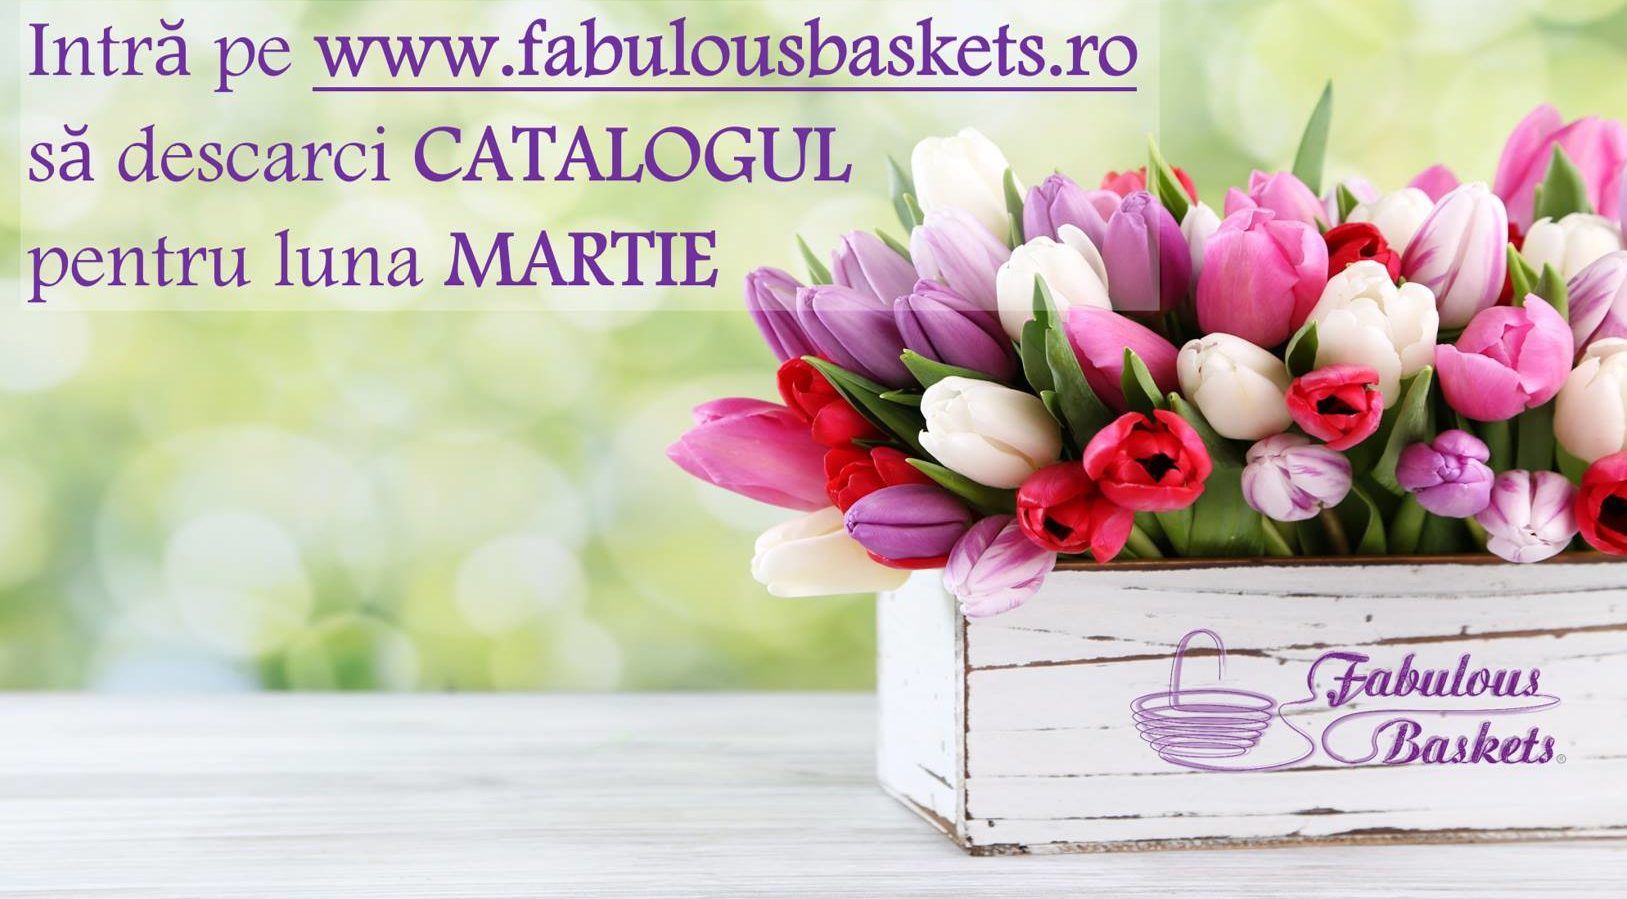 cropped-Banner-Fabulous-Baskets-1.jpg